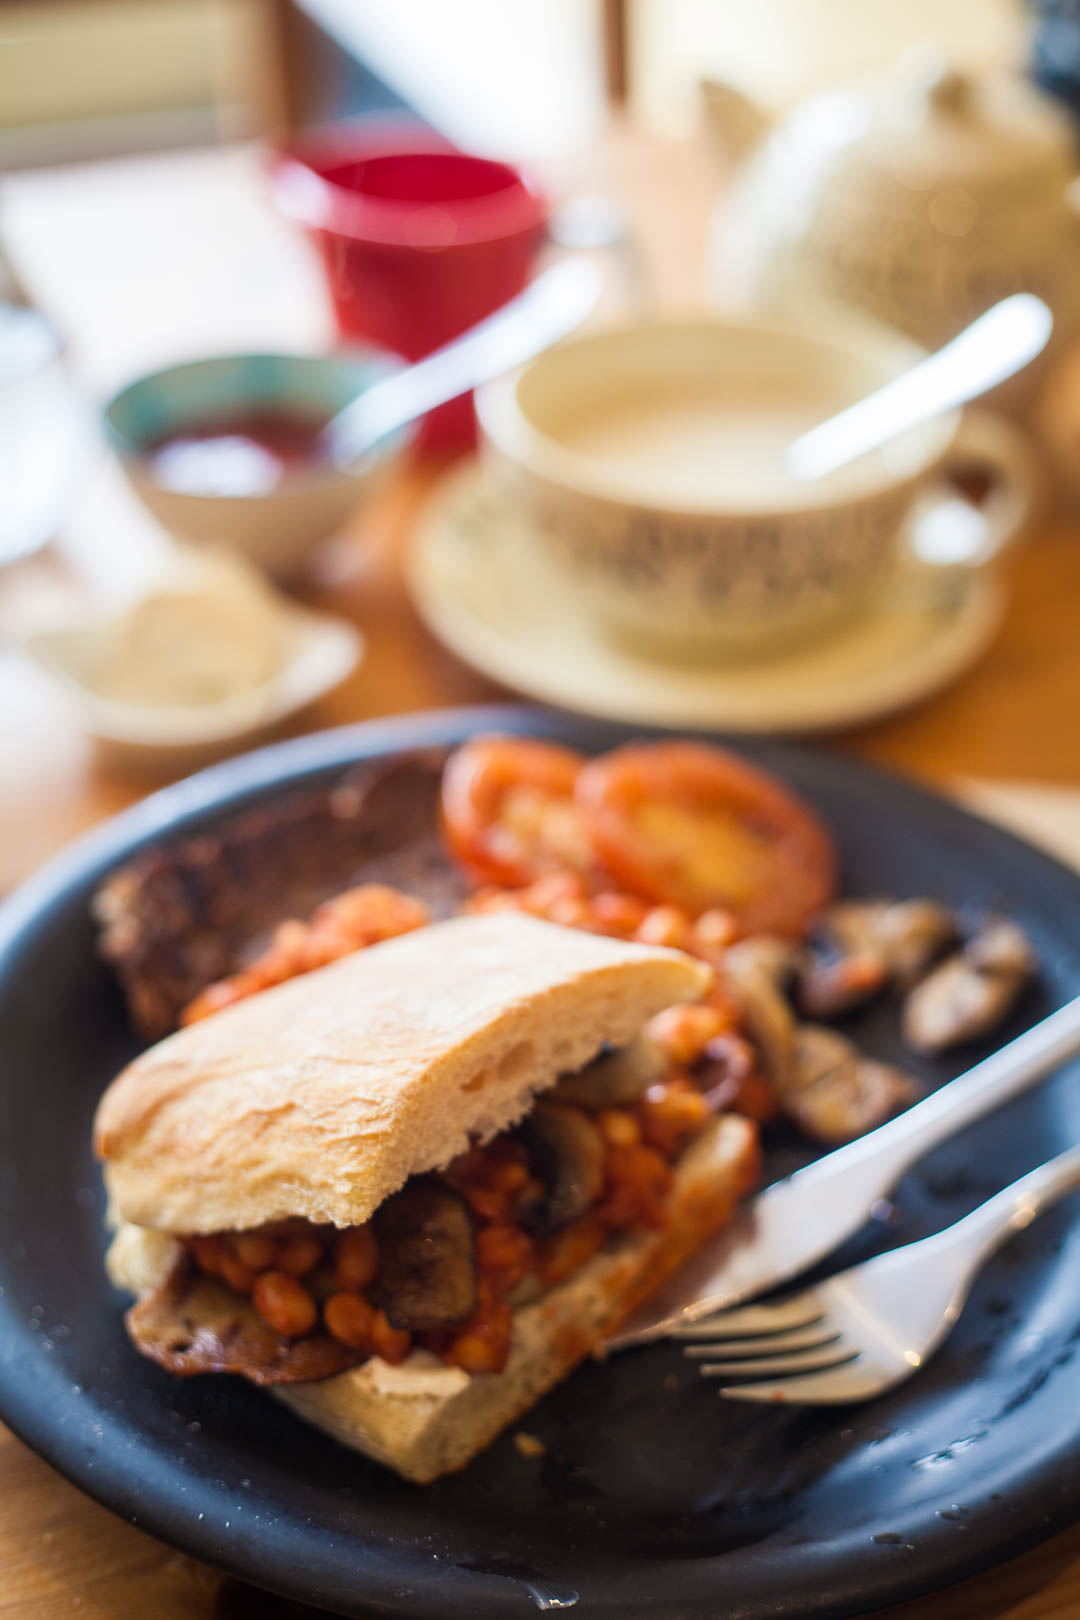 Vegan Restaurant Review: Soy Division Glasgow   Soy Division is an unassuming vegan cafe in the Southside of Glasgow, that would not only win the award for best vegan name in my books, but also serves up delicious homemade vegan breakfast and lunch fare, like meatless cooked breakfasts, dairy-free cheesecakes and fluffy French toasts!